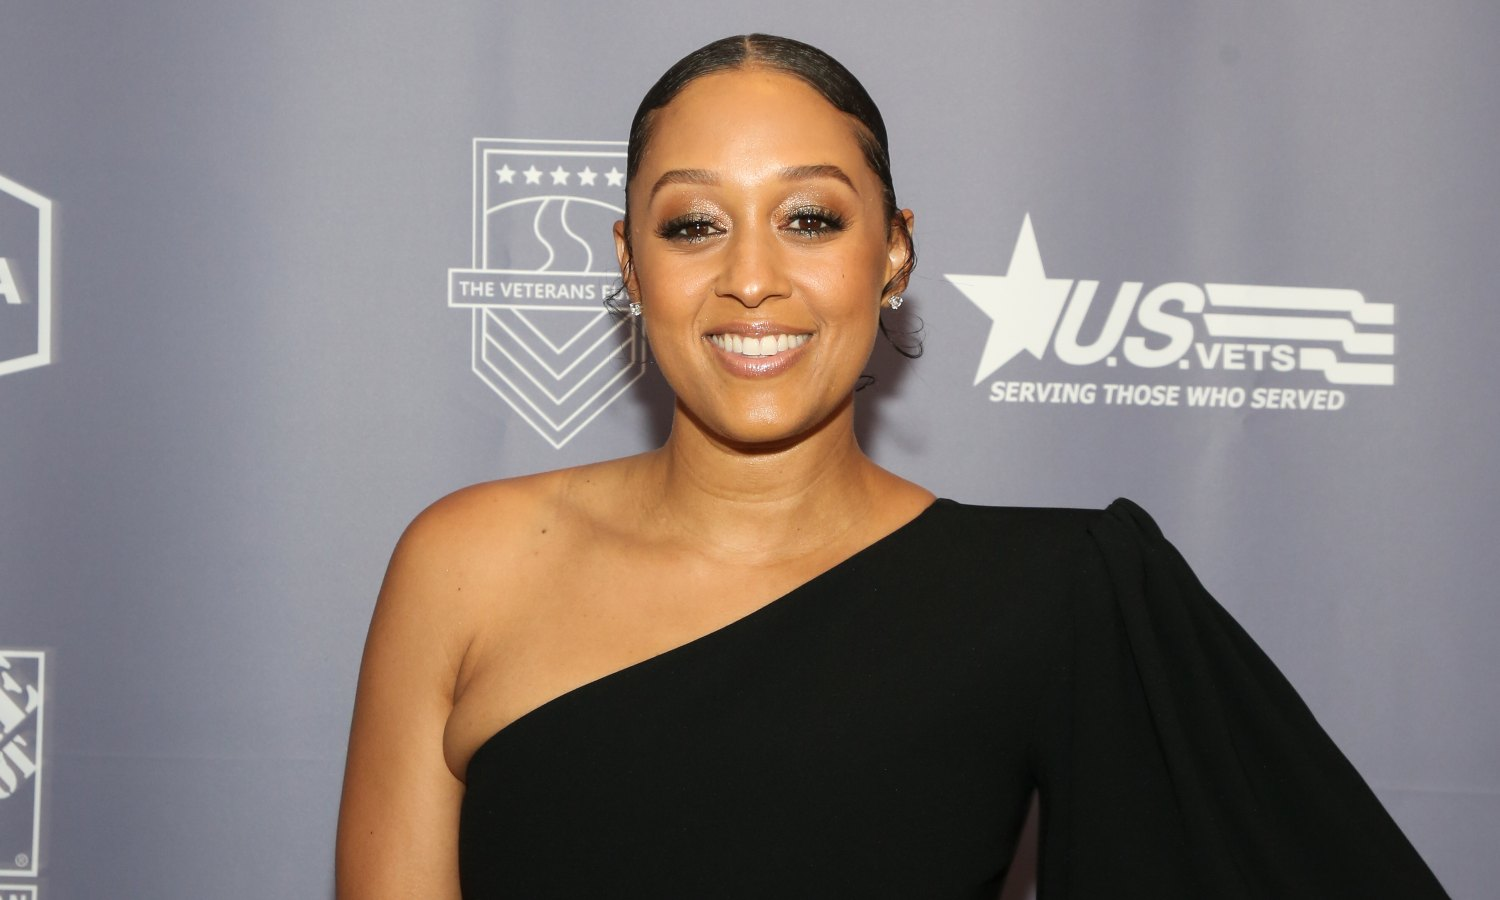 Image of Tia Mowry at the 019 U.S. Vets Salute Gala at The Beverly Hilton Hotel